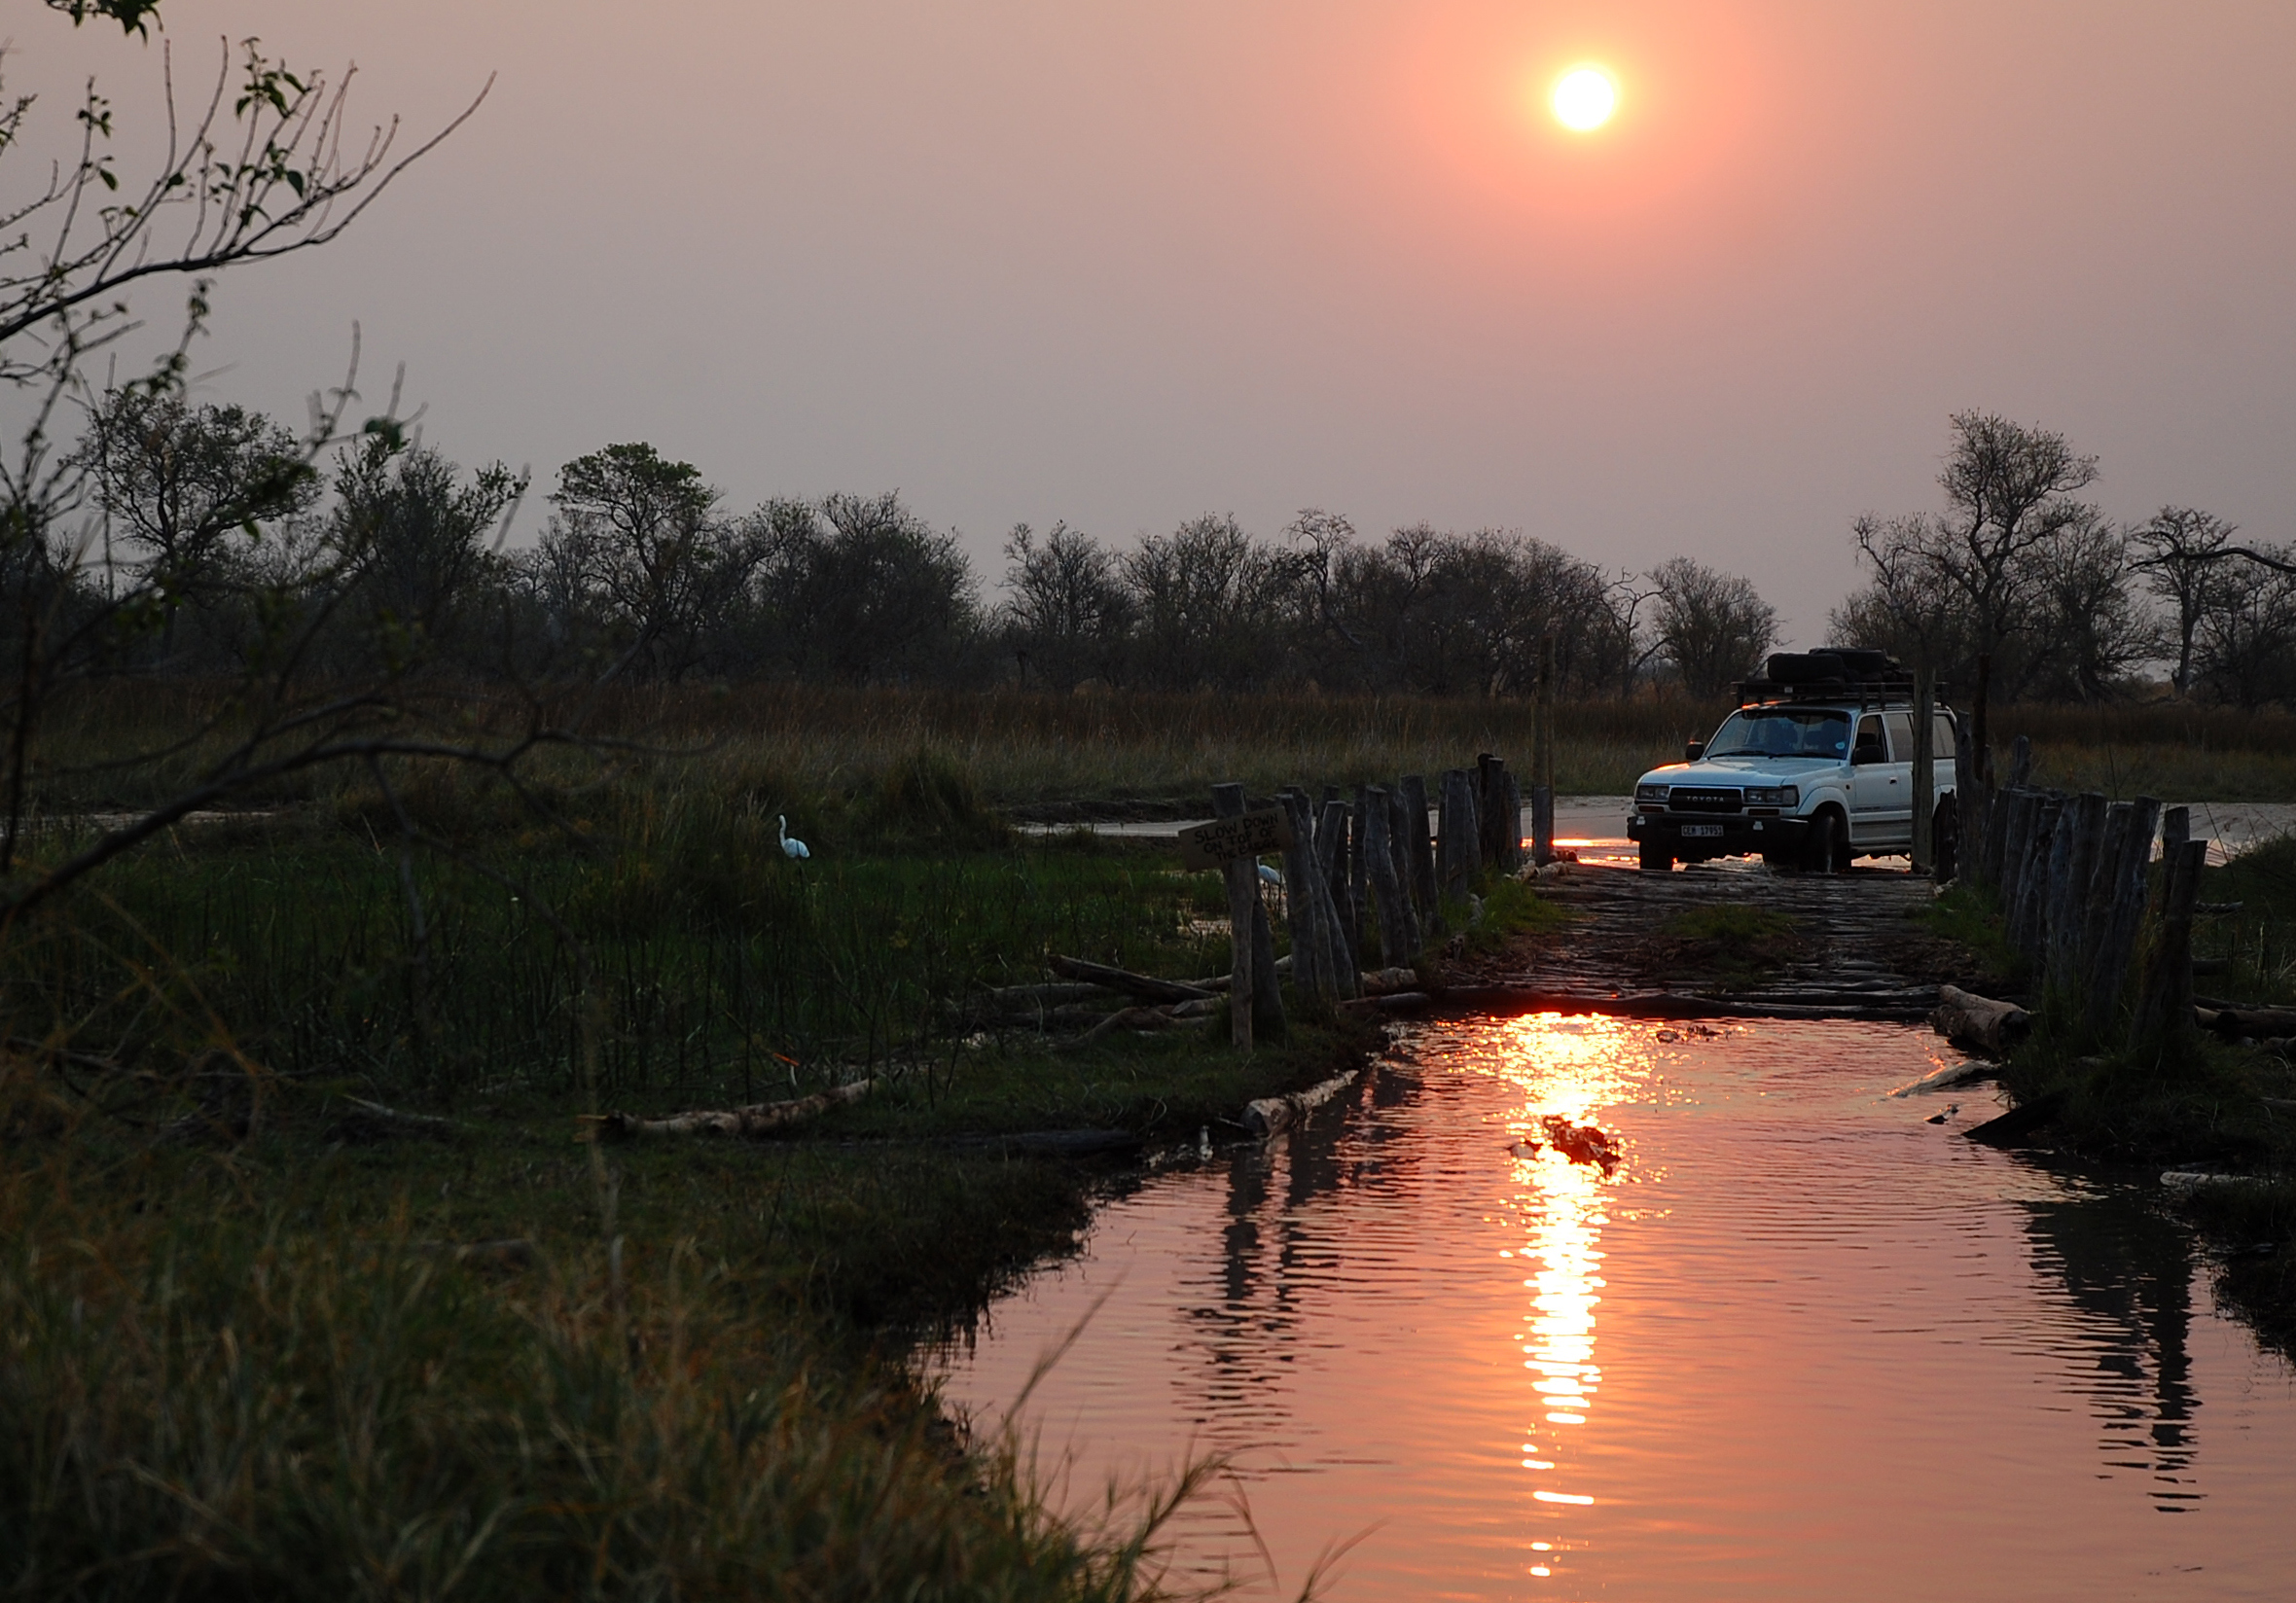 80 series Land Cruiser crossing second bridge in Moremi, Okavango Delta, Botswana.